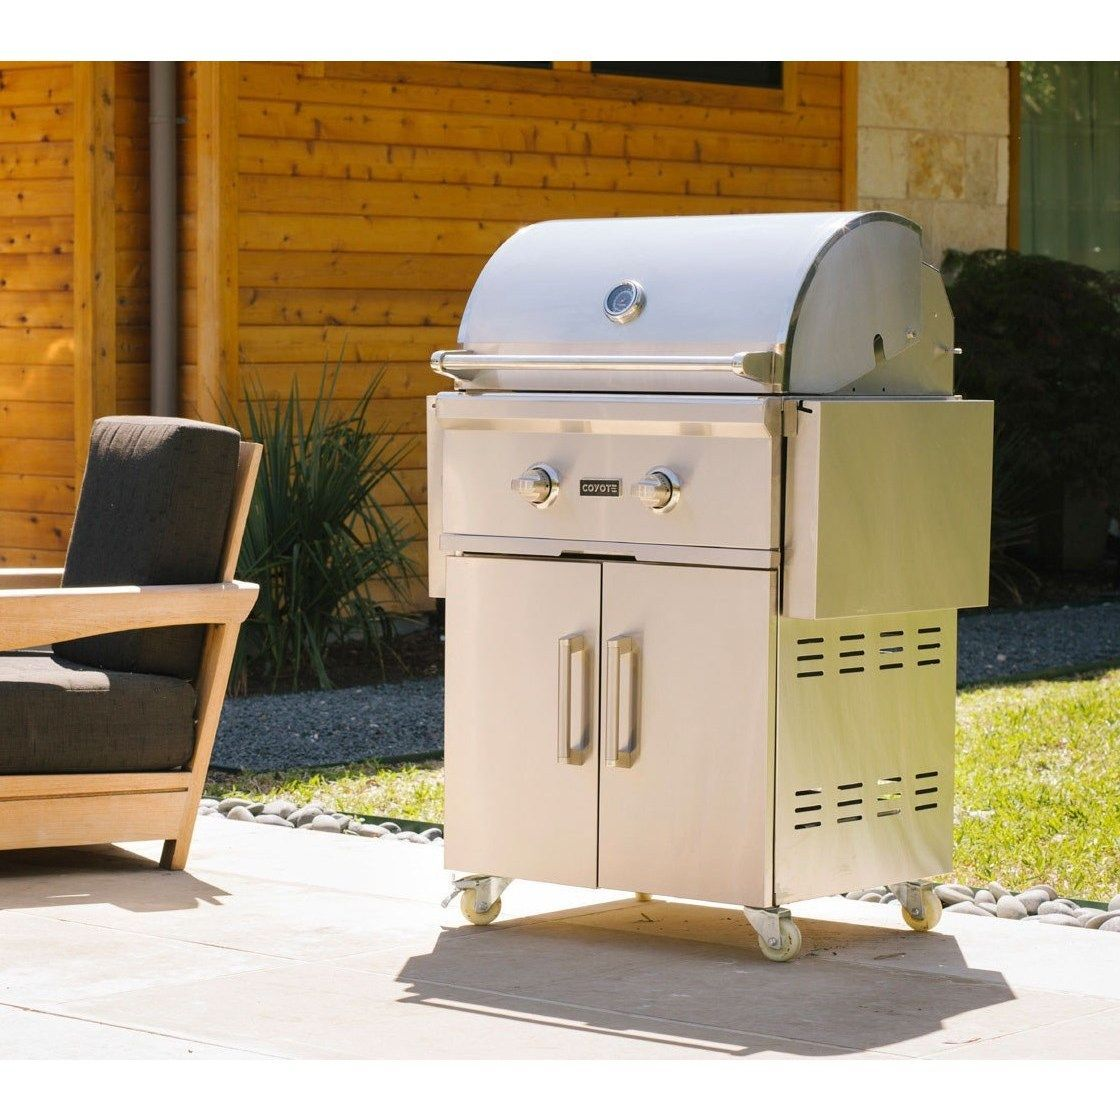 Portable Bbq Grill Natural Gas Grill Gas Grill Grilling